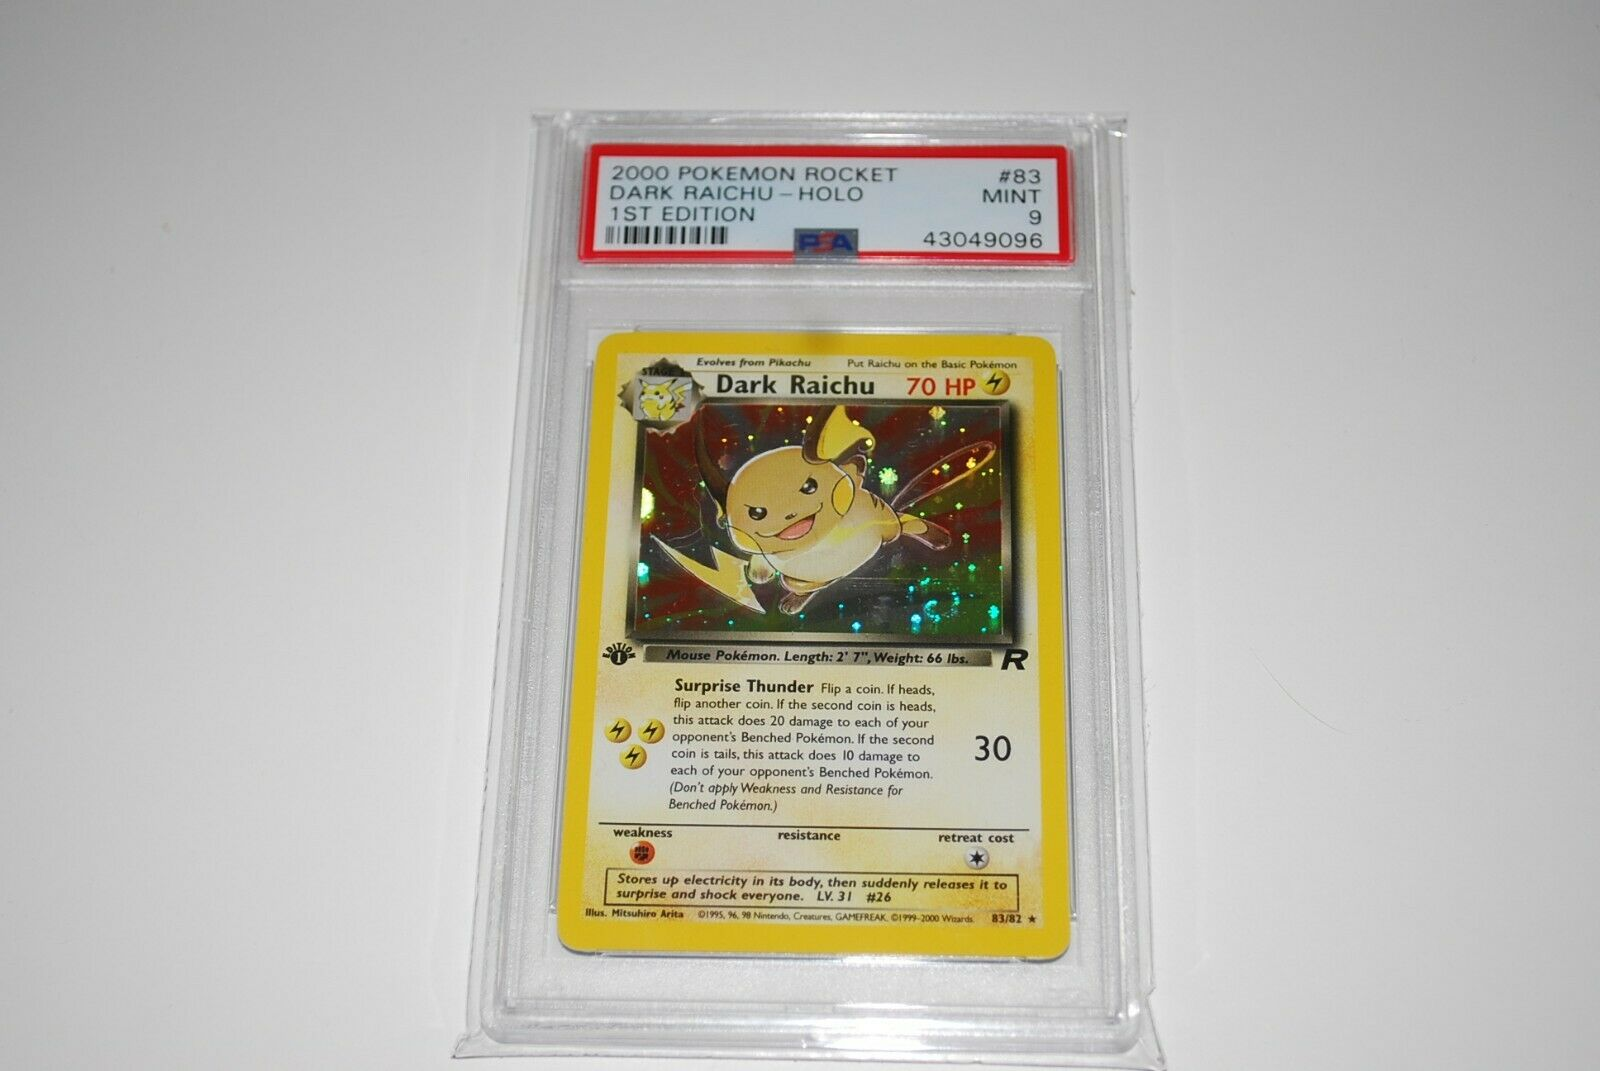 PSA 9 Mint 1st Edition Dark Raichu Holo 8382 Pokemon Card 19992000